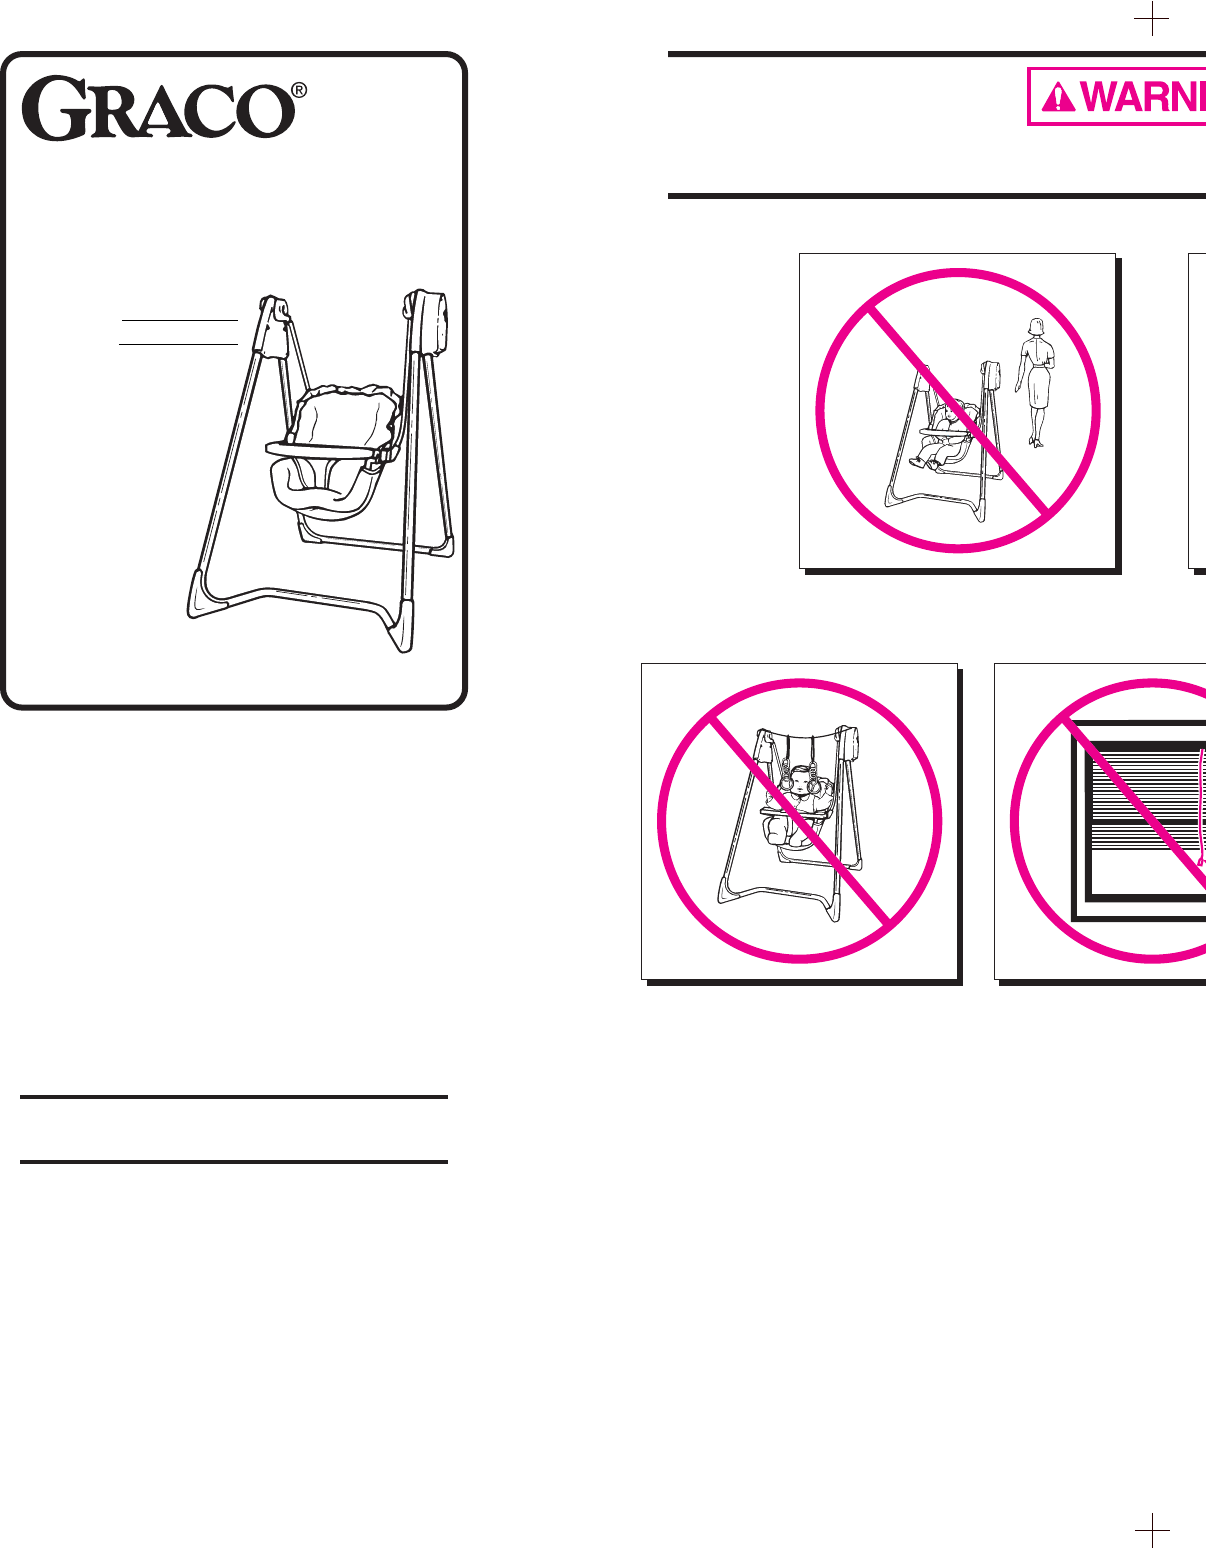 Graco Swing Sets 1434, 1444, 1452 User Guide